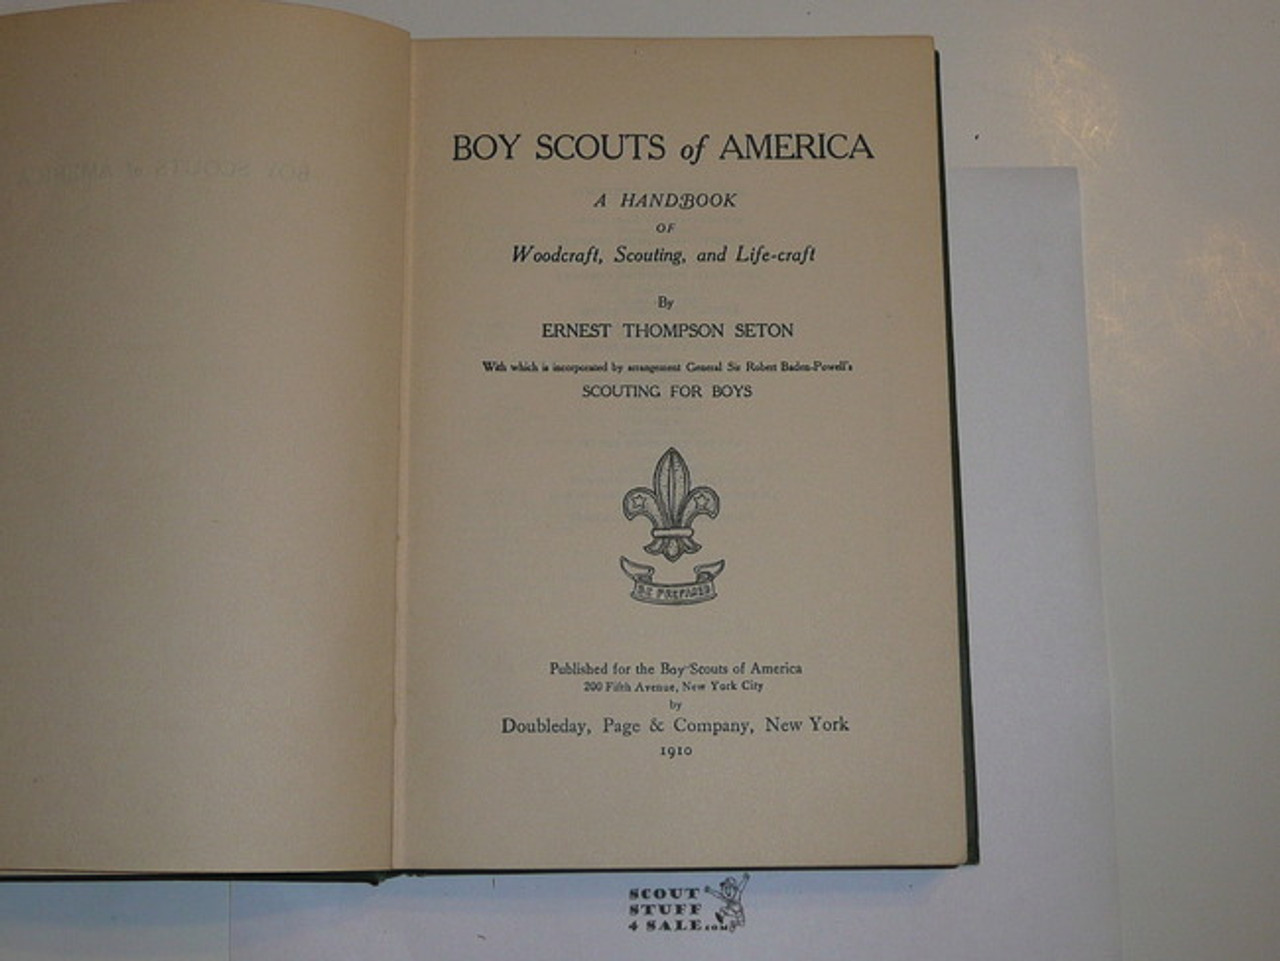 1910 Boy Scout Handbook, Original Edition, RARE CAMP FIRE EDITION, hardbound, signed by Dan Beard and E.T. Seton, WOW!!!